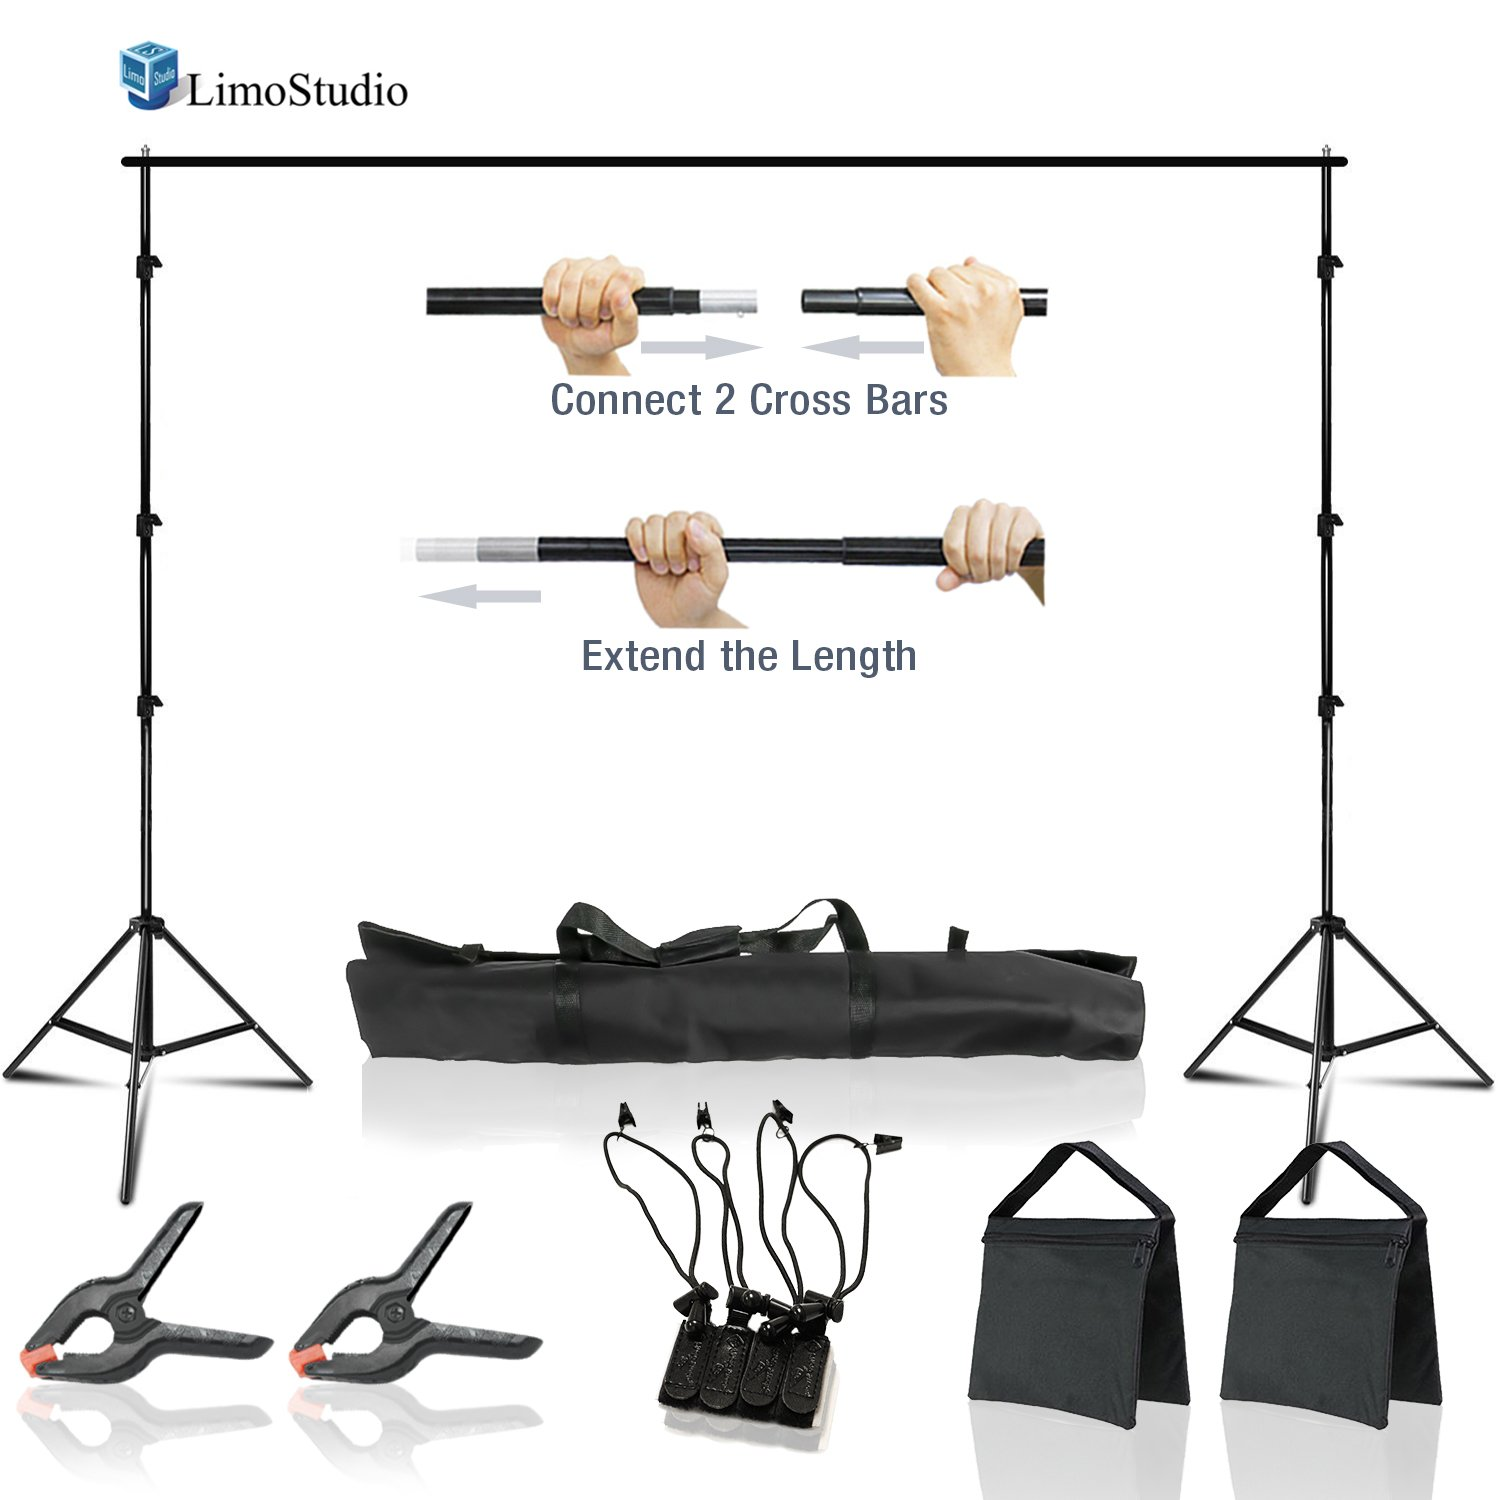 LimoStudio 10 x 8.5 ft Adjustable Photo Video Background Muslin Stand, Backdrop Support System Kit with Accessories, Spring Clamp, Sand Bag, AGG2612 by LimoStudio